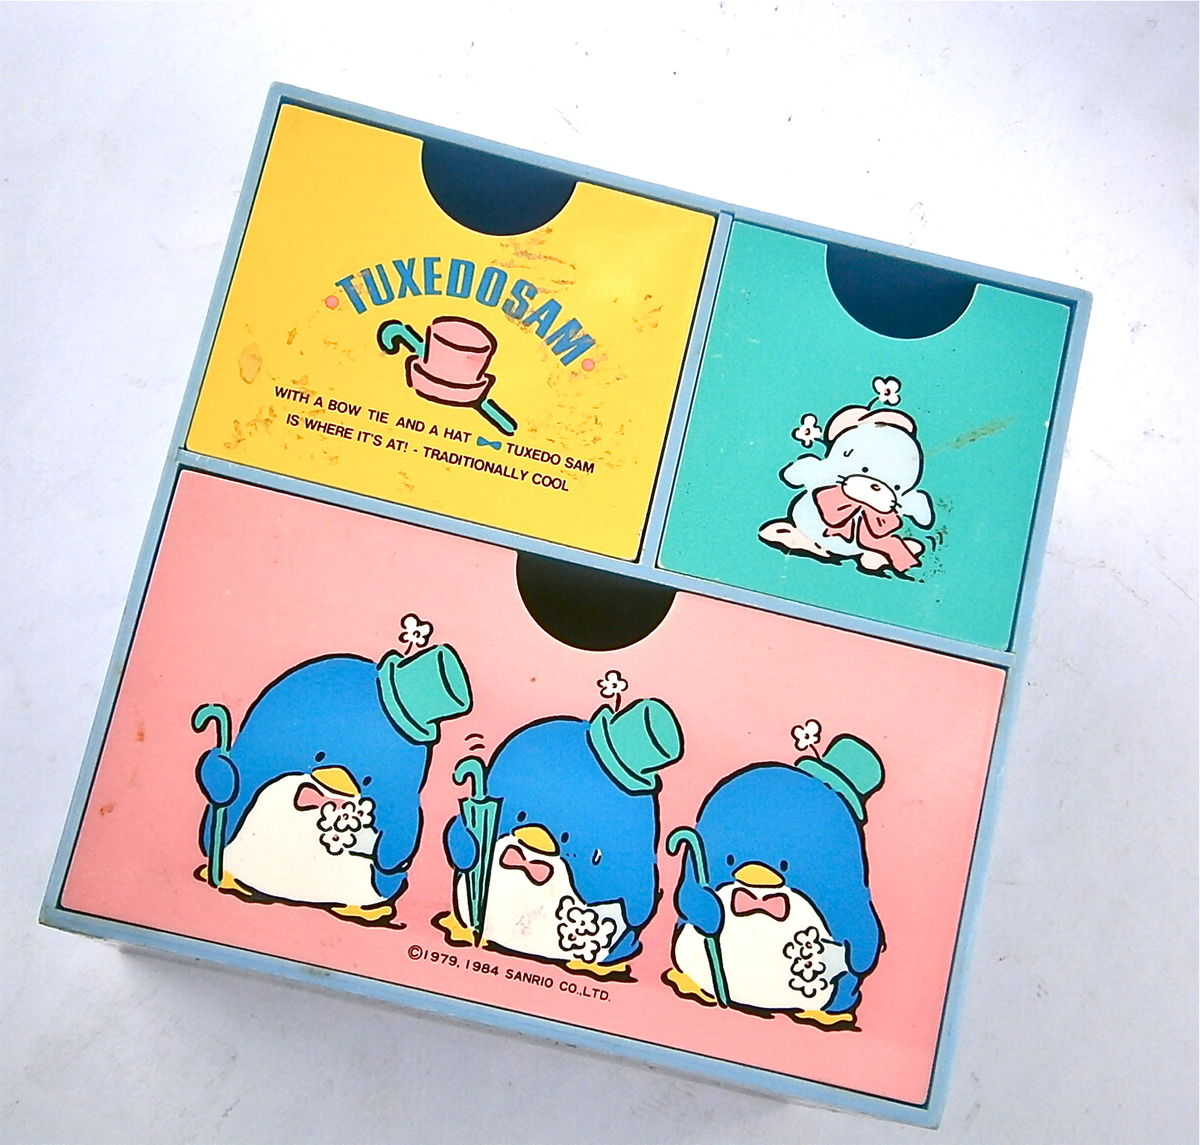 Vintage Sanrio Drawer Organizer Tuxedo Sam Blue Box Organizer Penguin Pastel Container Case Office School Supplies Kawaii Home Sweet Pole - product images  of